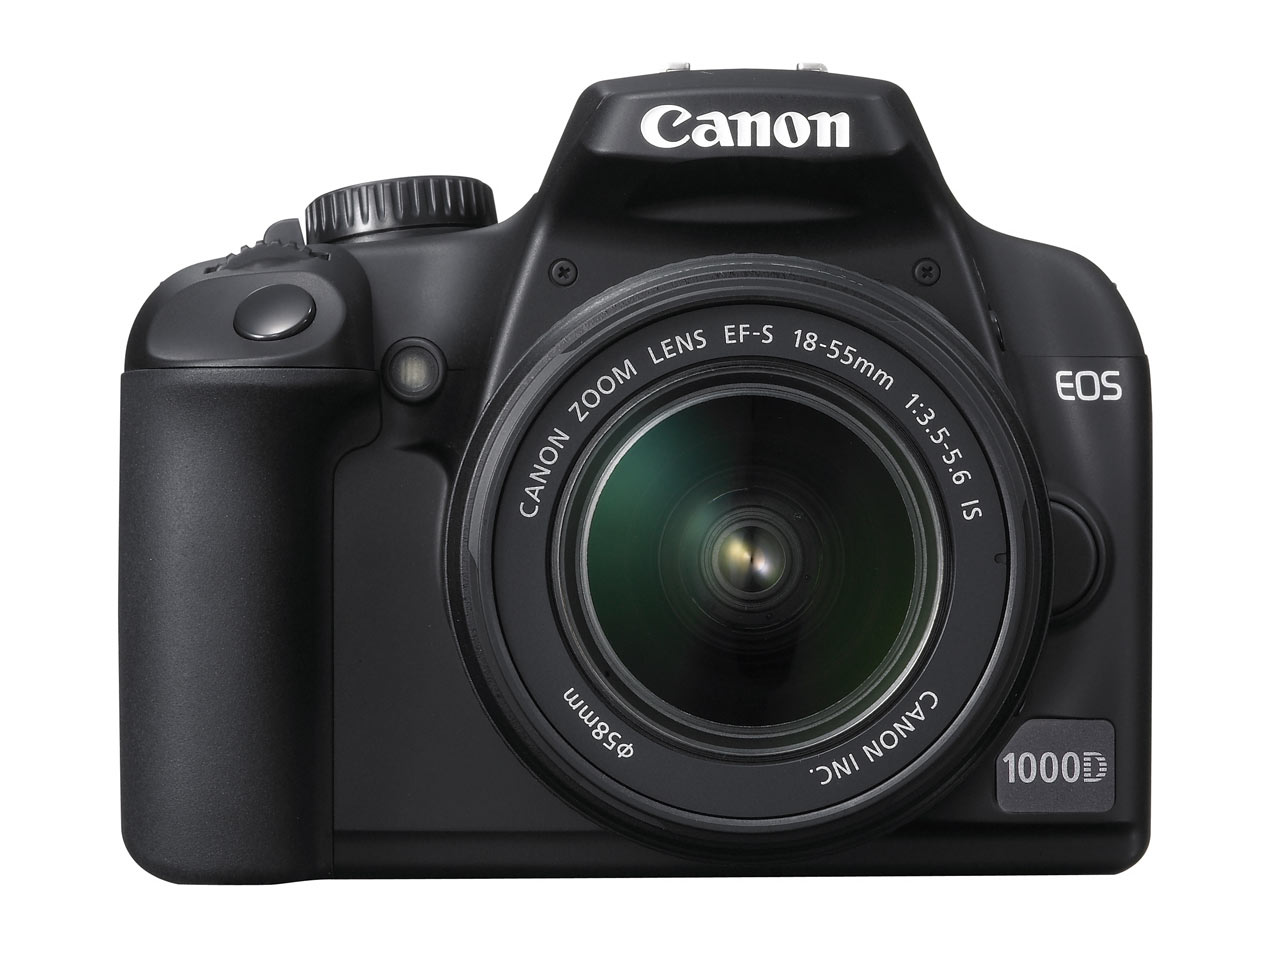 Canon launches EOS 1000D / Rebel XS: Digital Photography Review